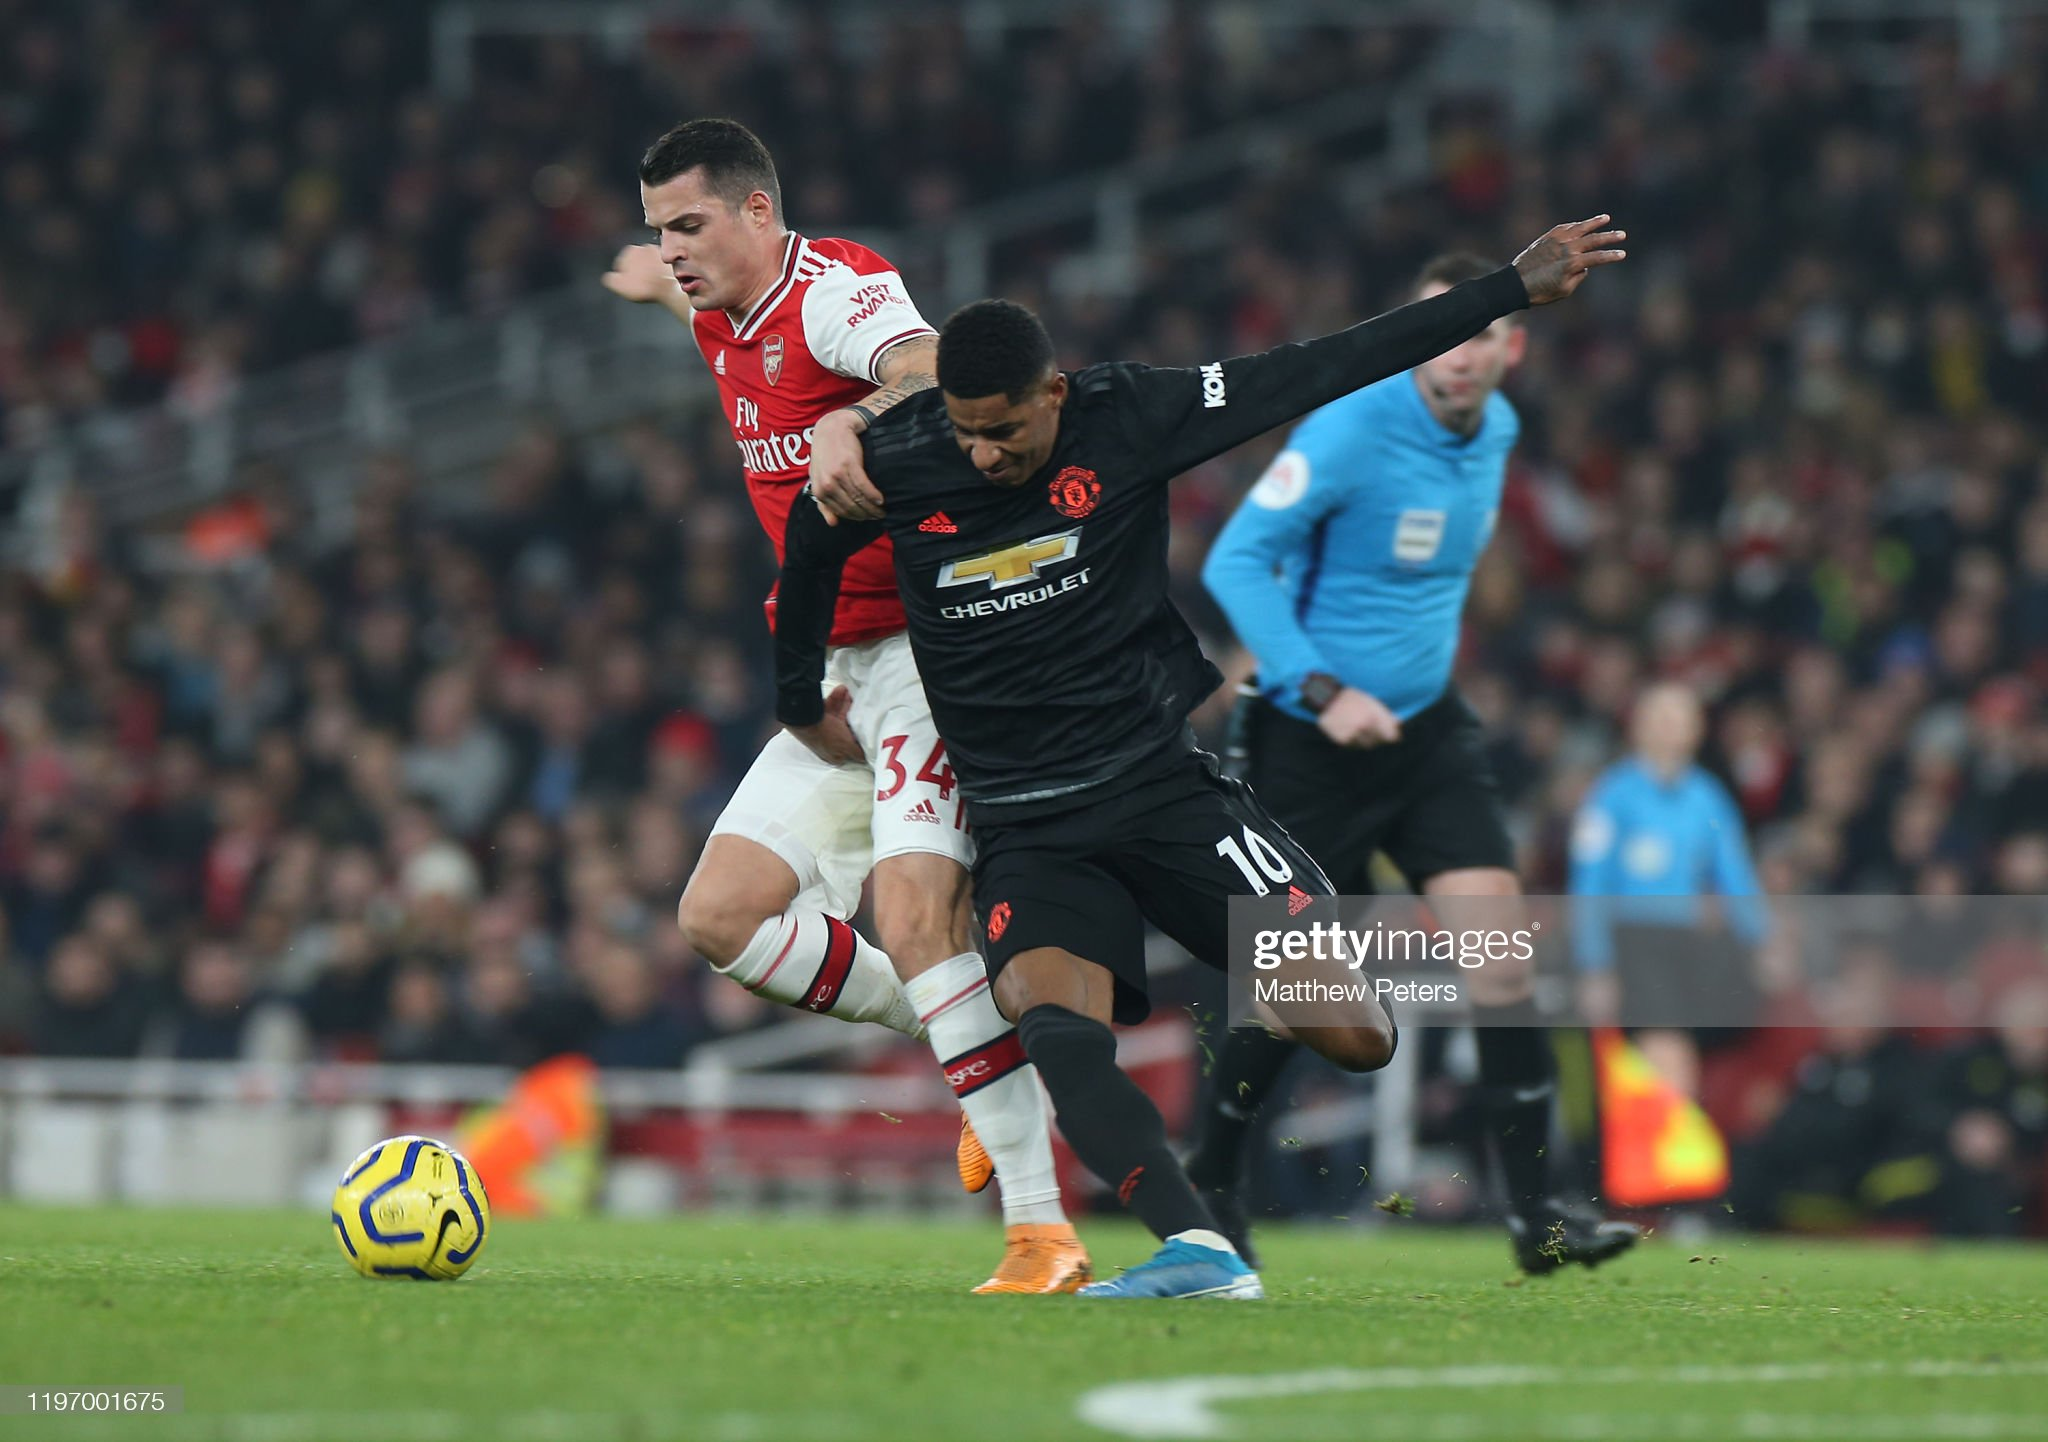 Manchester United vs Arsenal Preview, prediction and odds